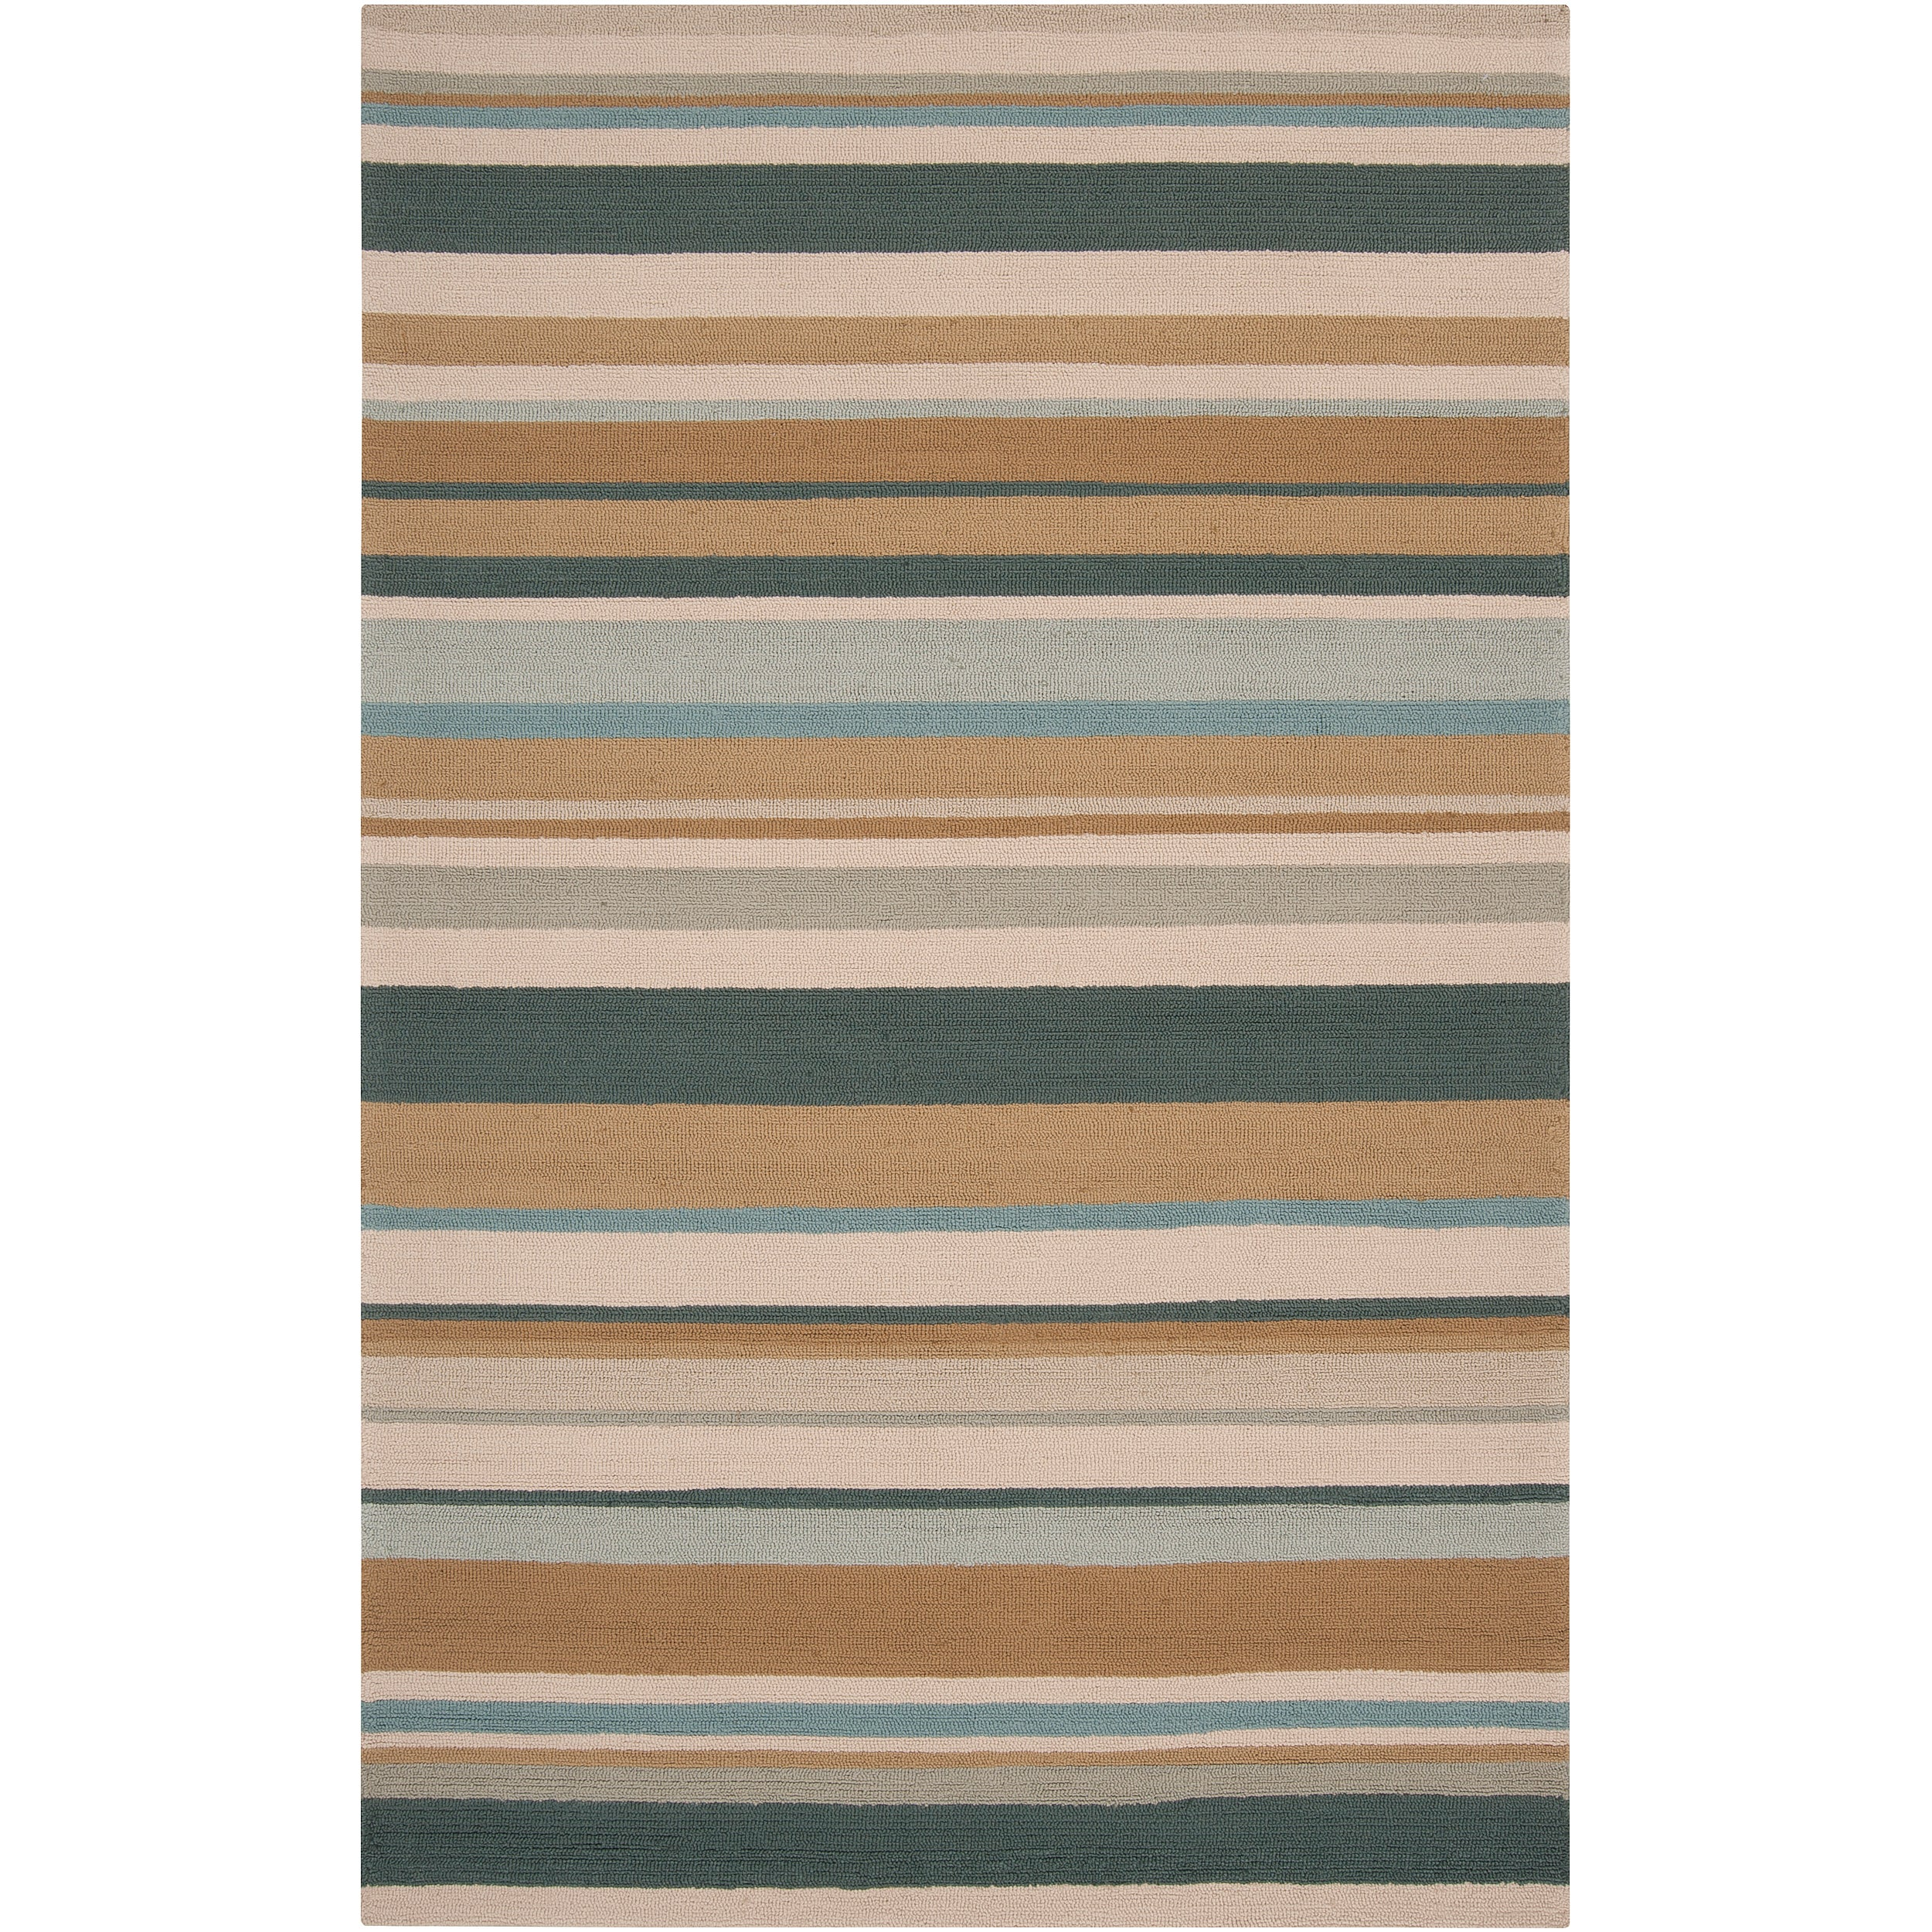 Hand-hooked Blue Radiant Indoor/Outdoor Stripe Rug (3' x 5') - Thumbnail 0